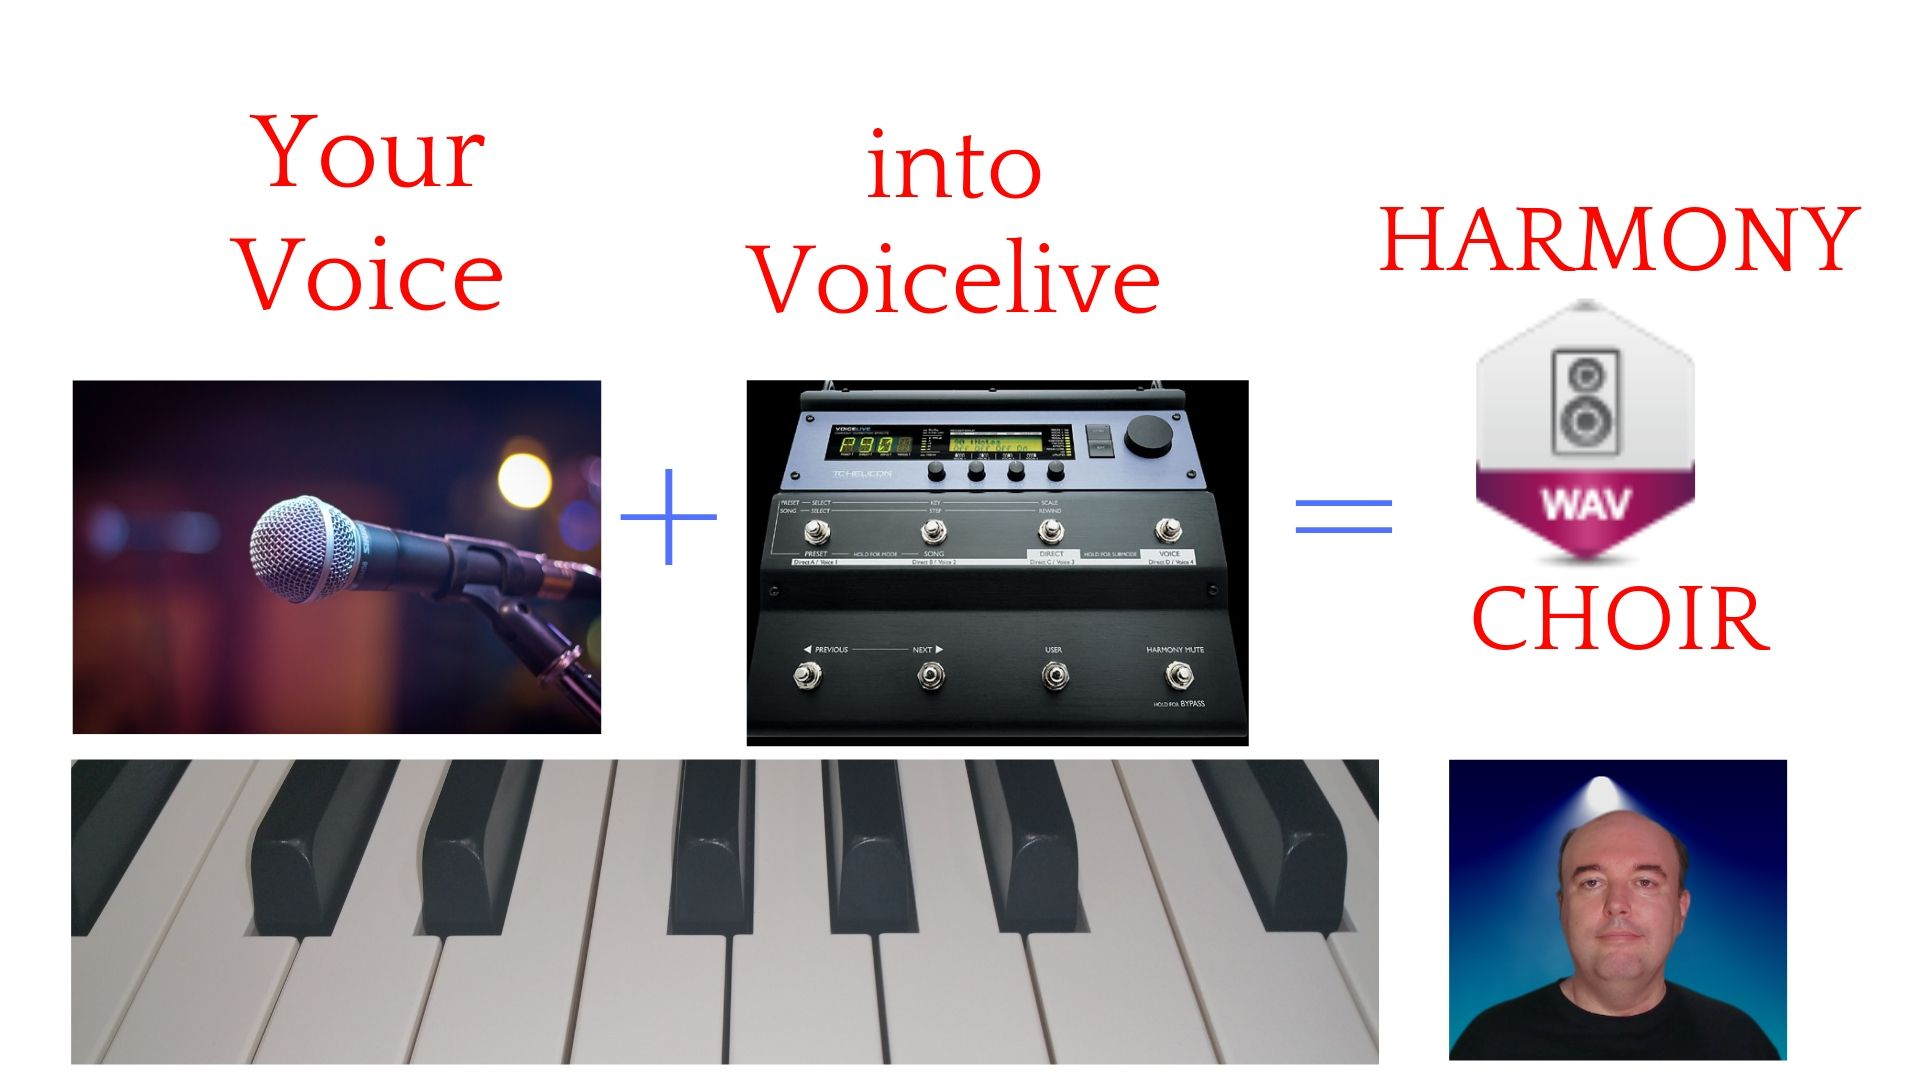 CHOIR CREATION VOICE LIVE service on fiverr.com